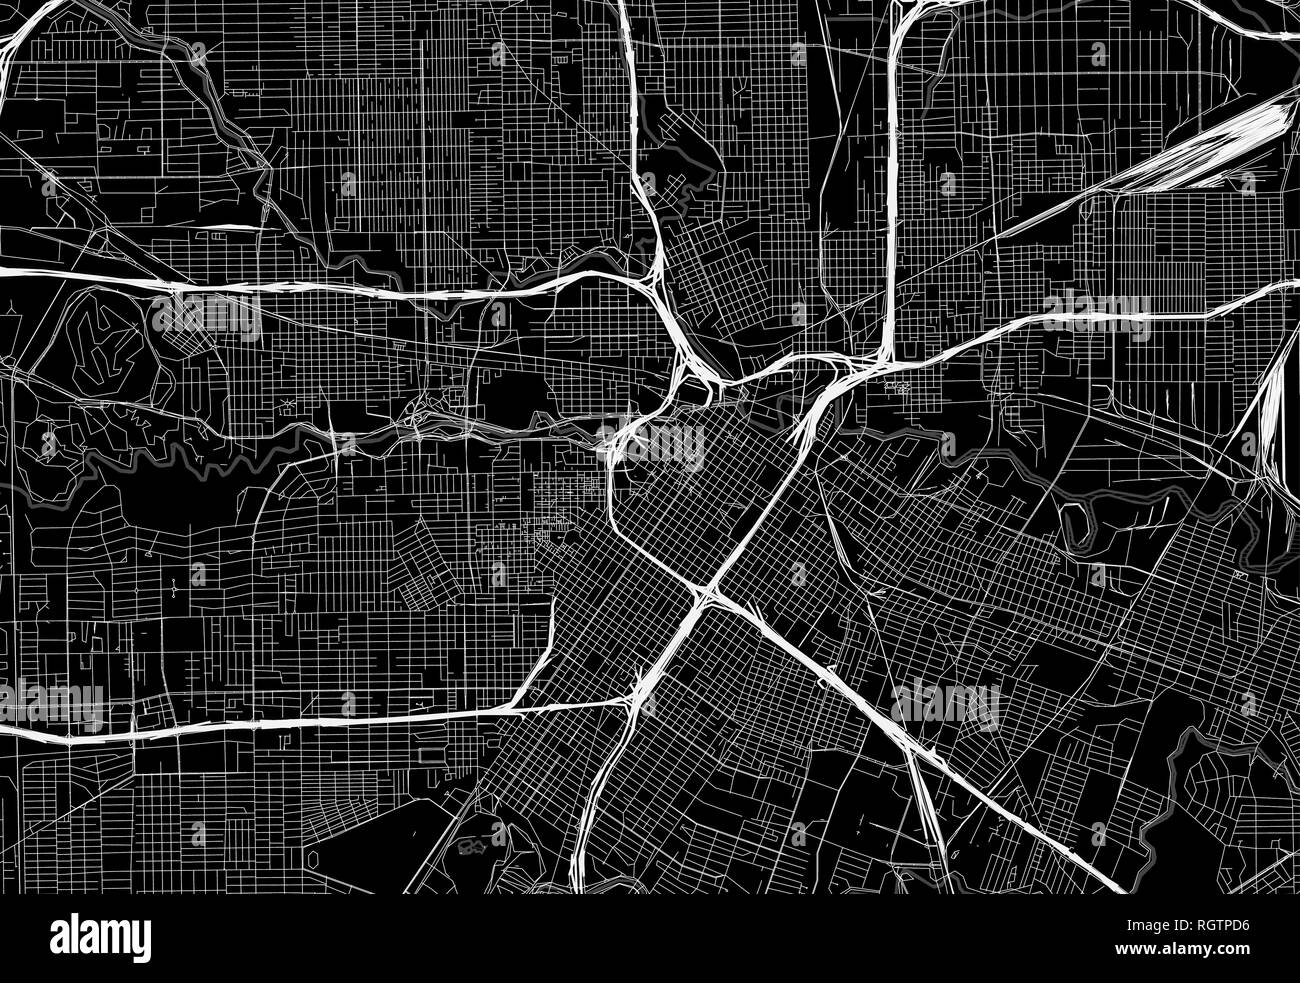 Black map of downtown Houston, U.S.A. This vector artmap is created as a decorative background or a unique travel sign. - Stock Vector